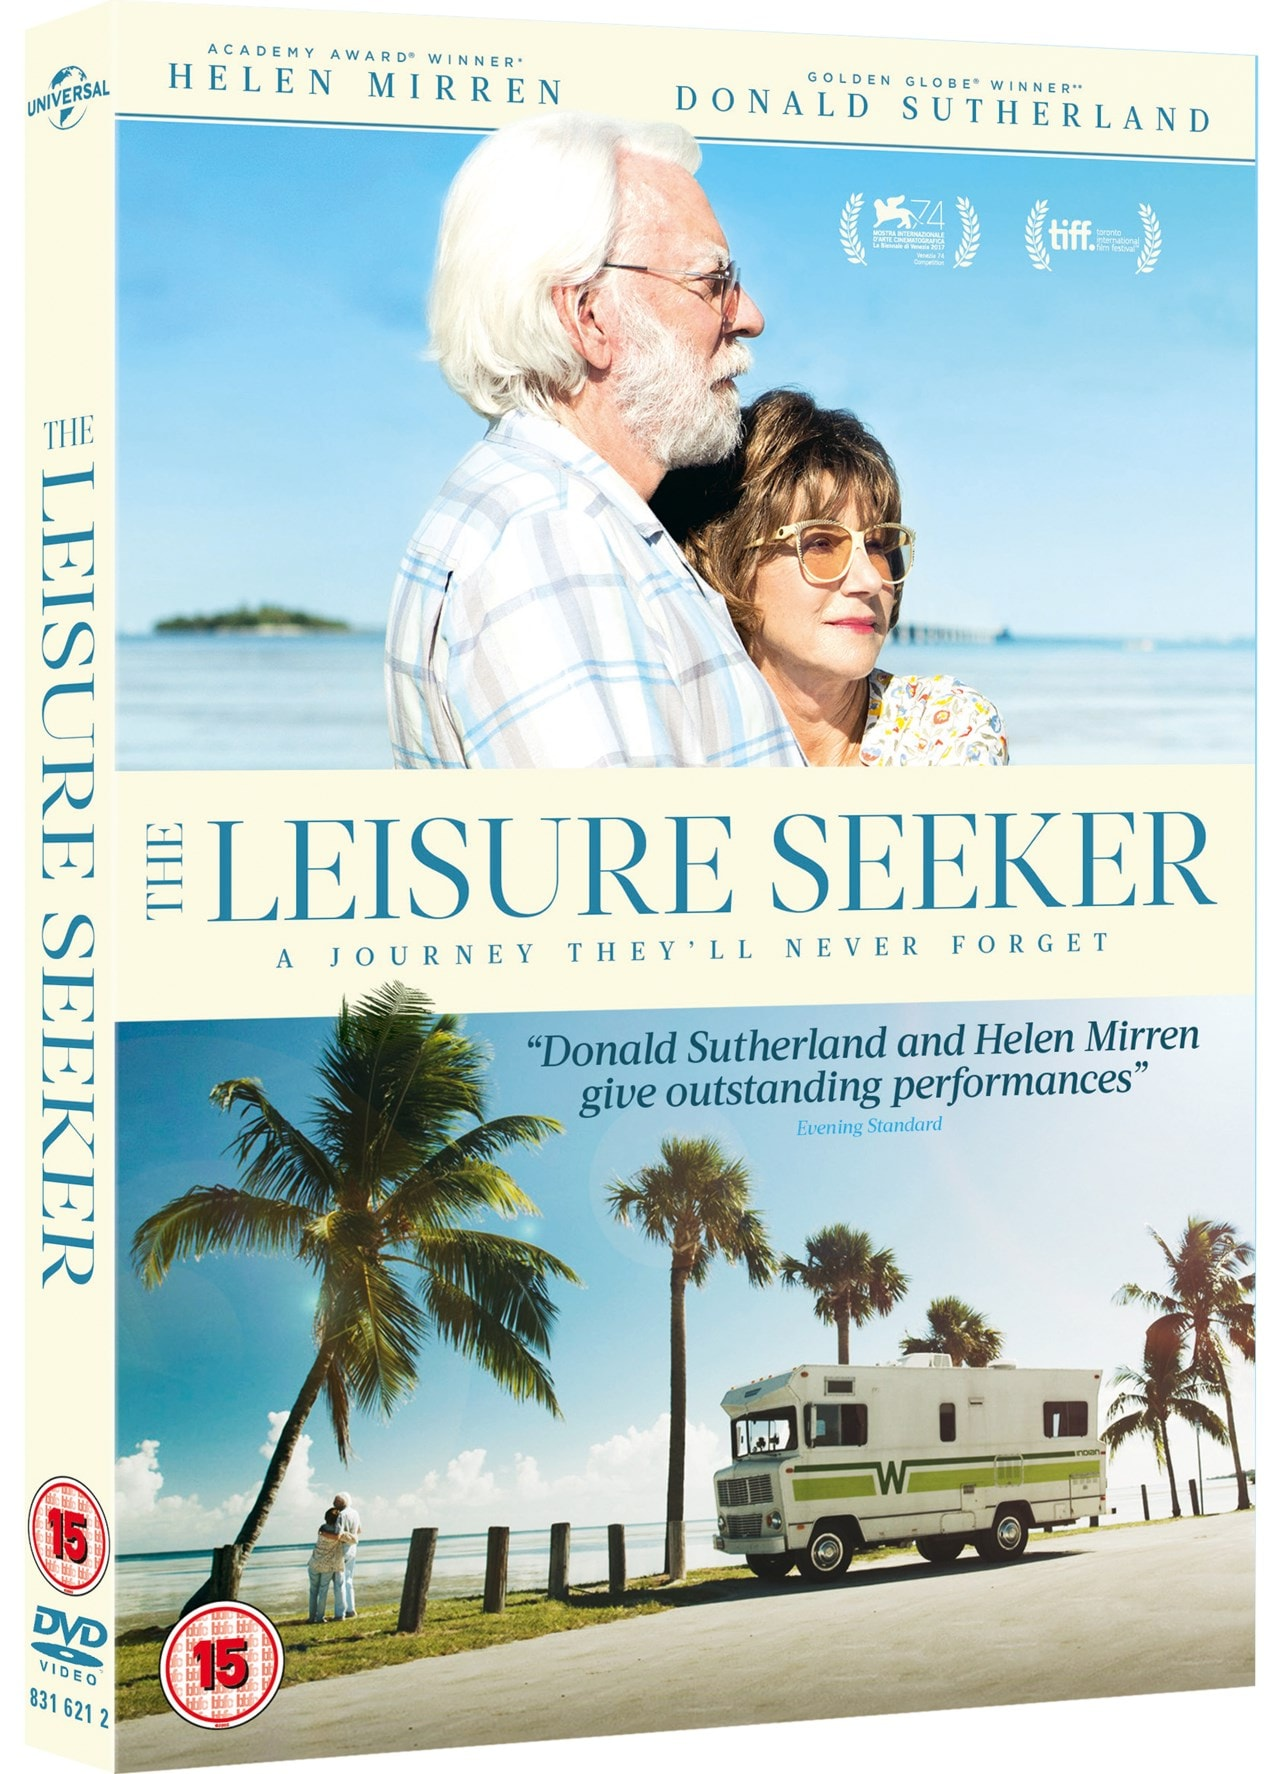 The Leisure Seeker - 2